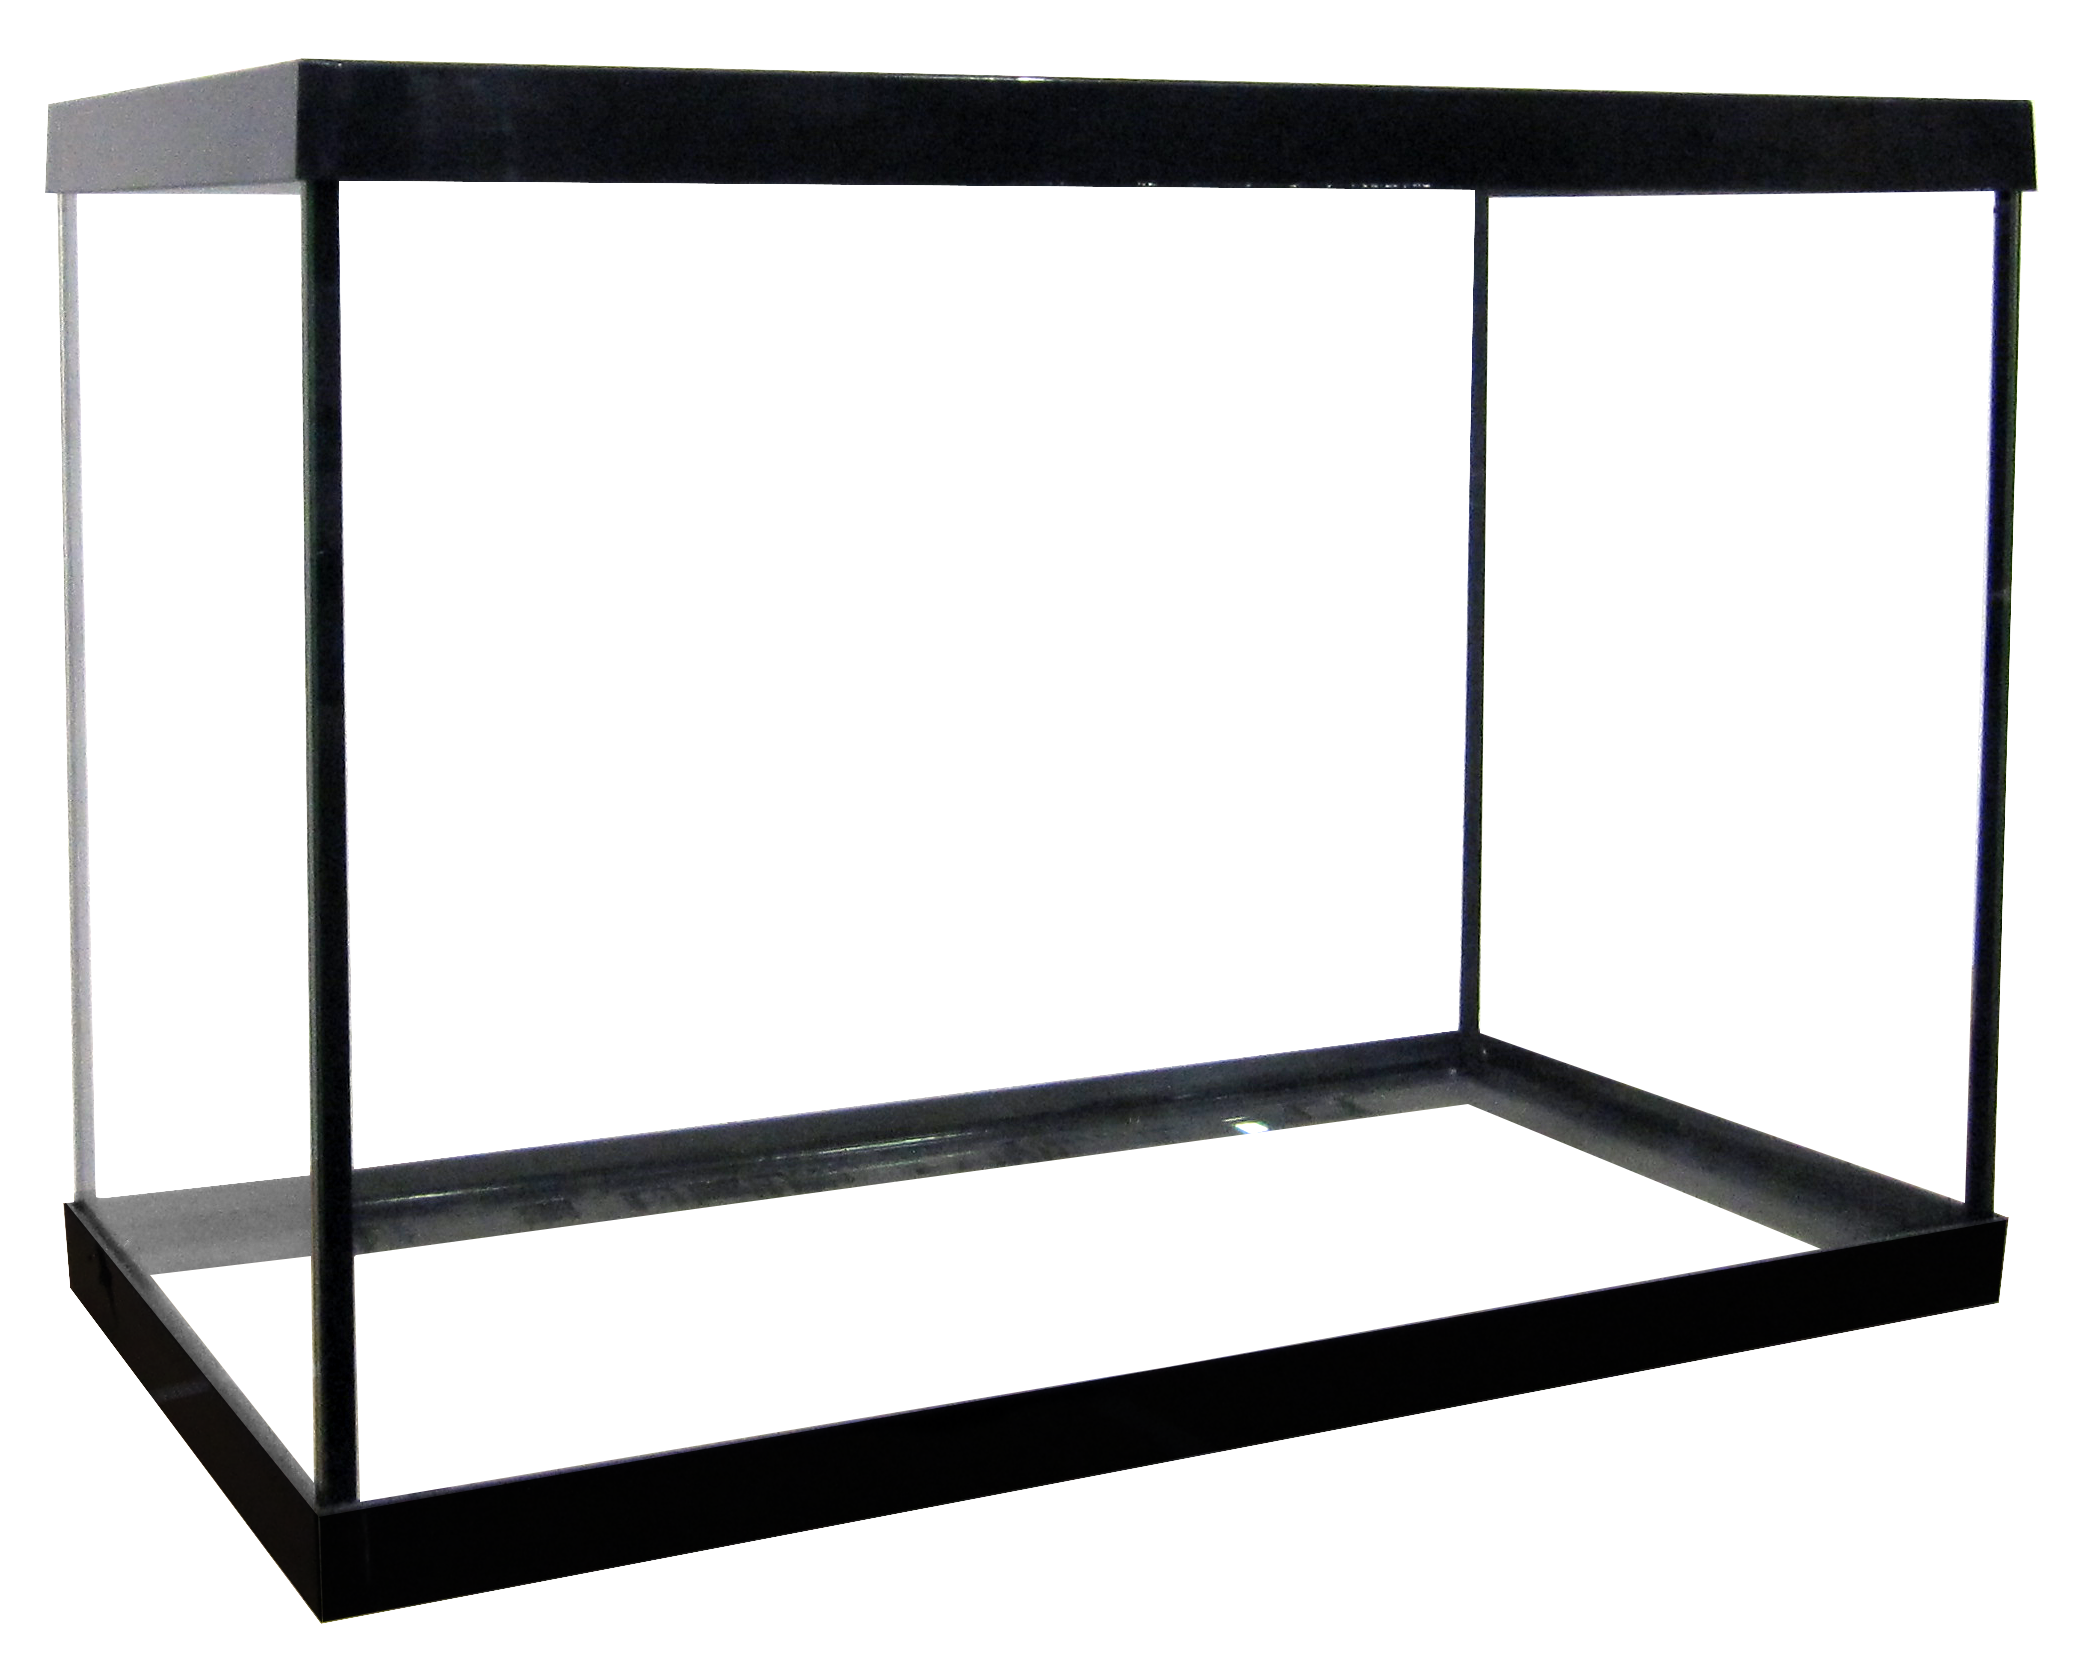 "20 Regular Aquarium - 24x12x16""   SKU#: AM11020  UPC#:  7-49729-11020-0   Product Dimension:  24.3""x12.5""x12.8""   Capacity: Approximately 20 gallons  Weight: 26.4 lbs"